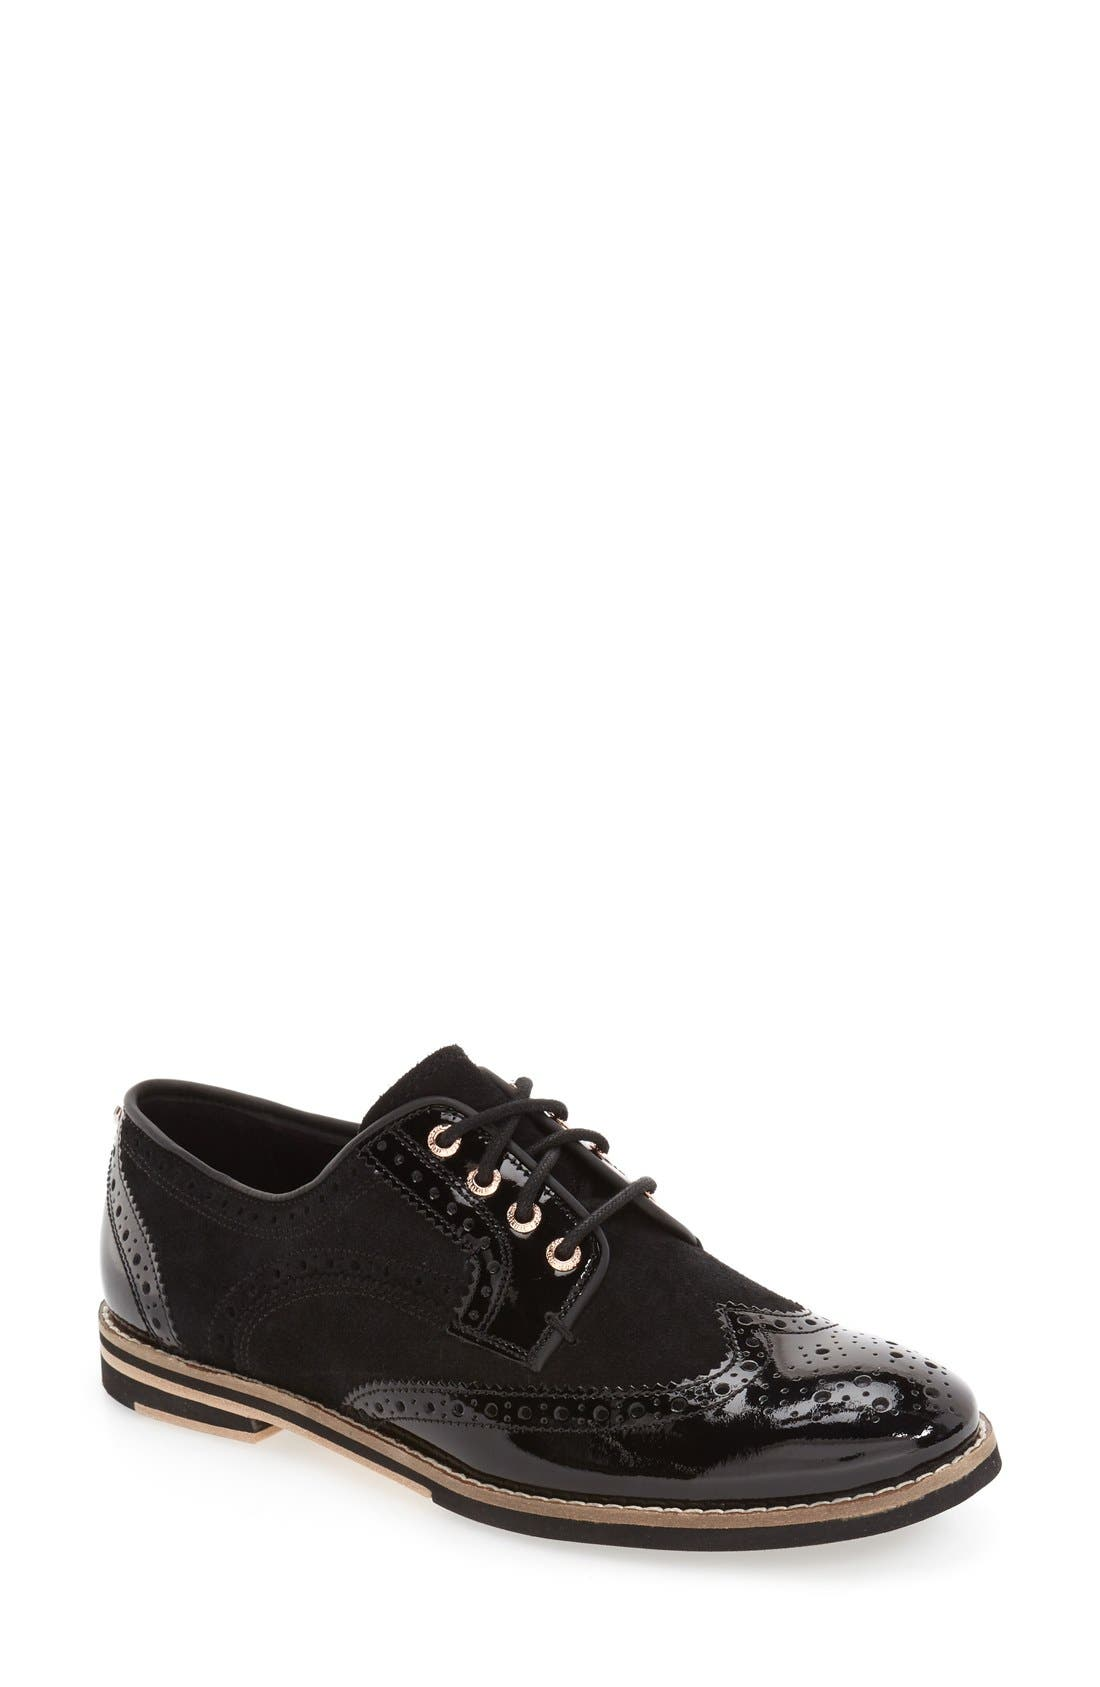 TED BAKER LONDON 'Anoihe' Oxford, Main, color, 015